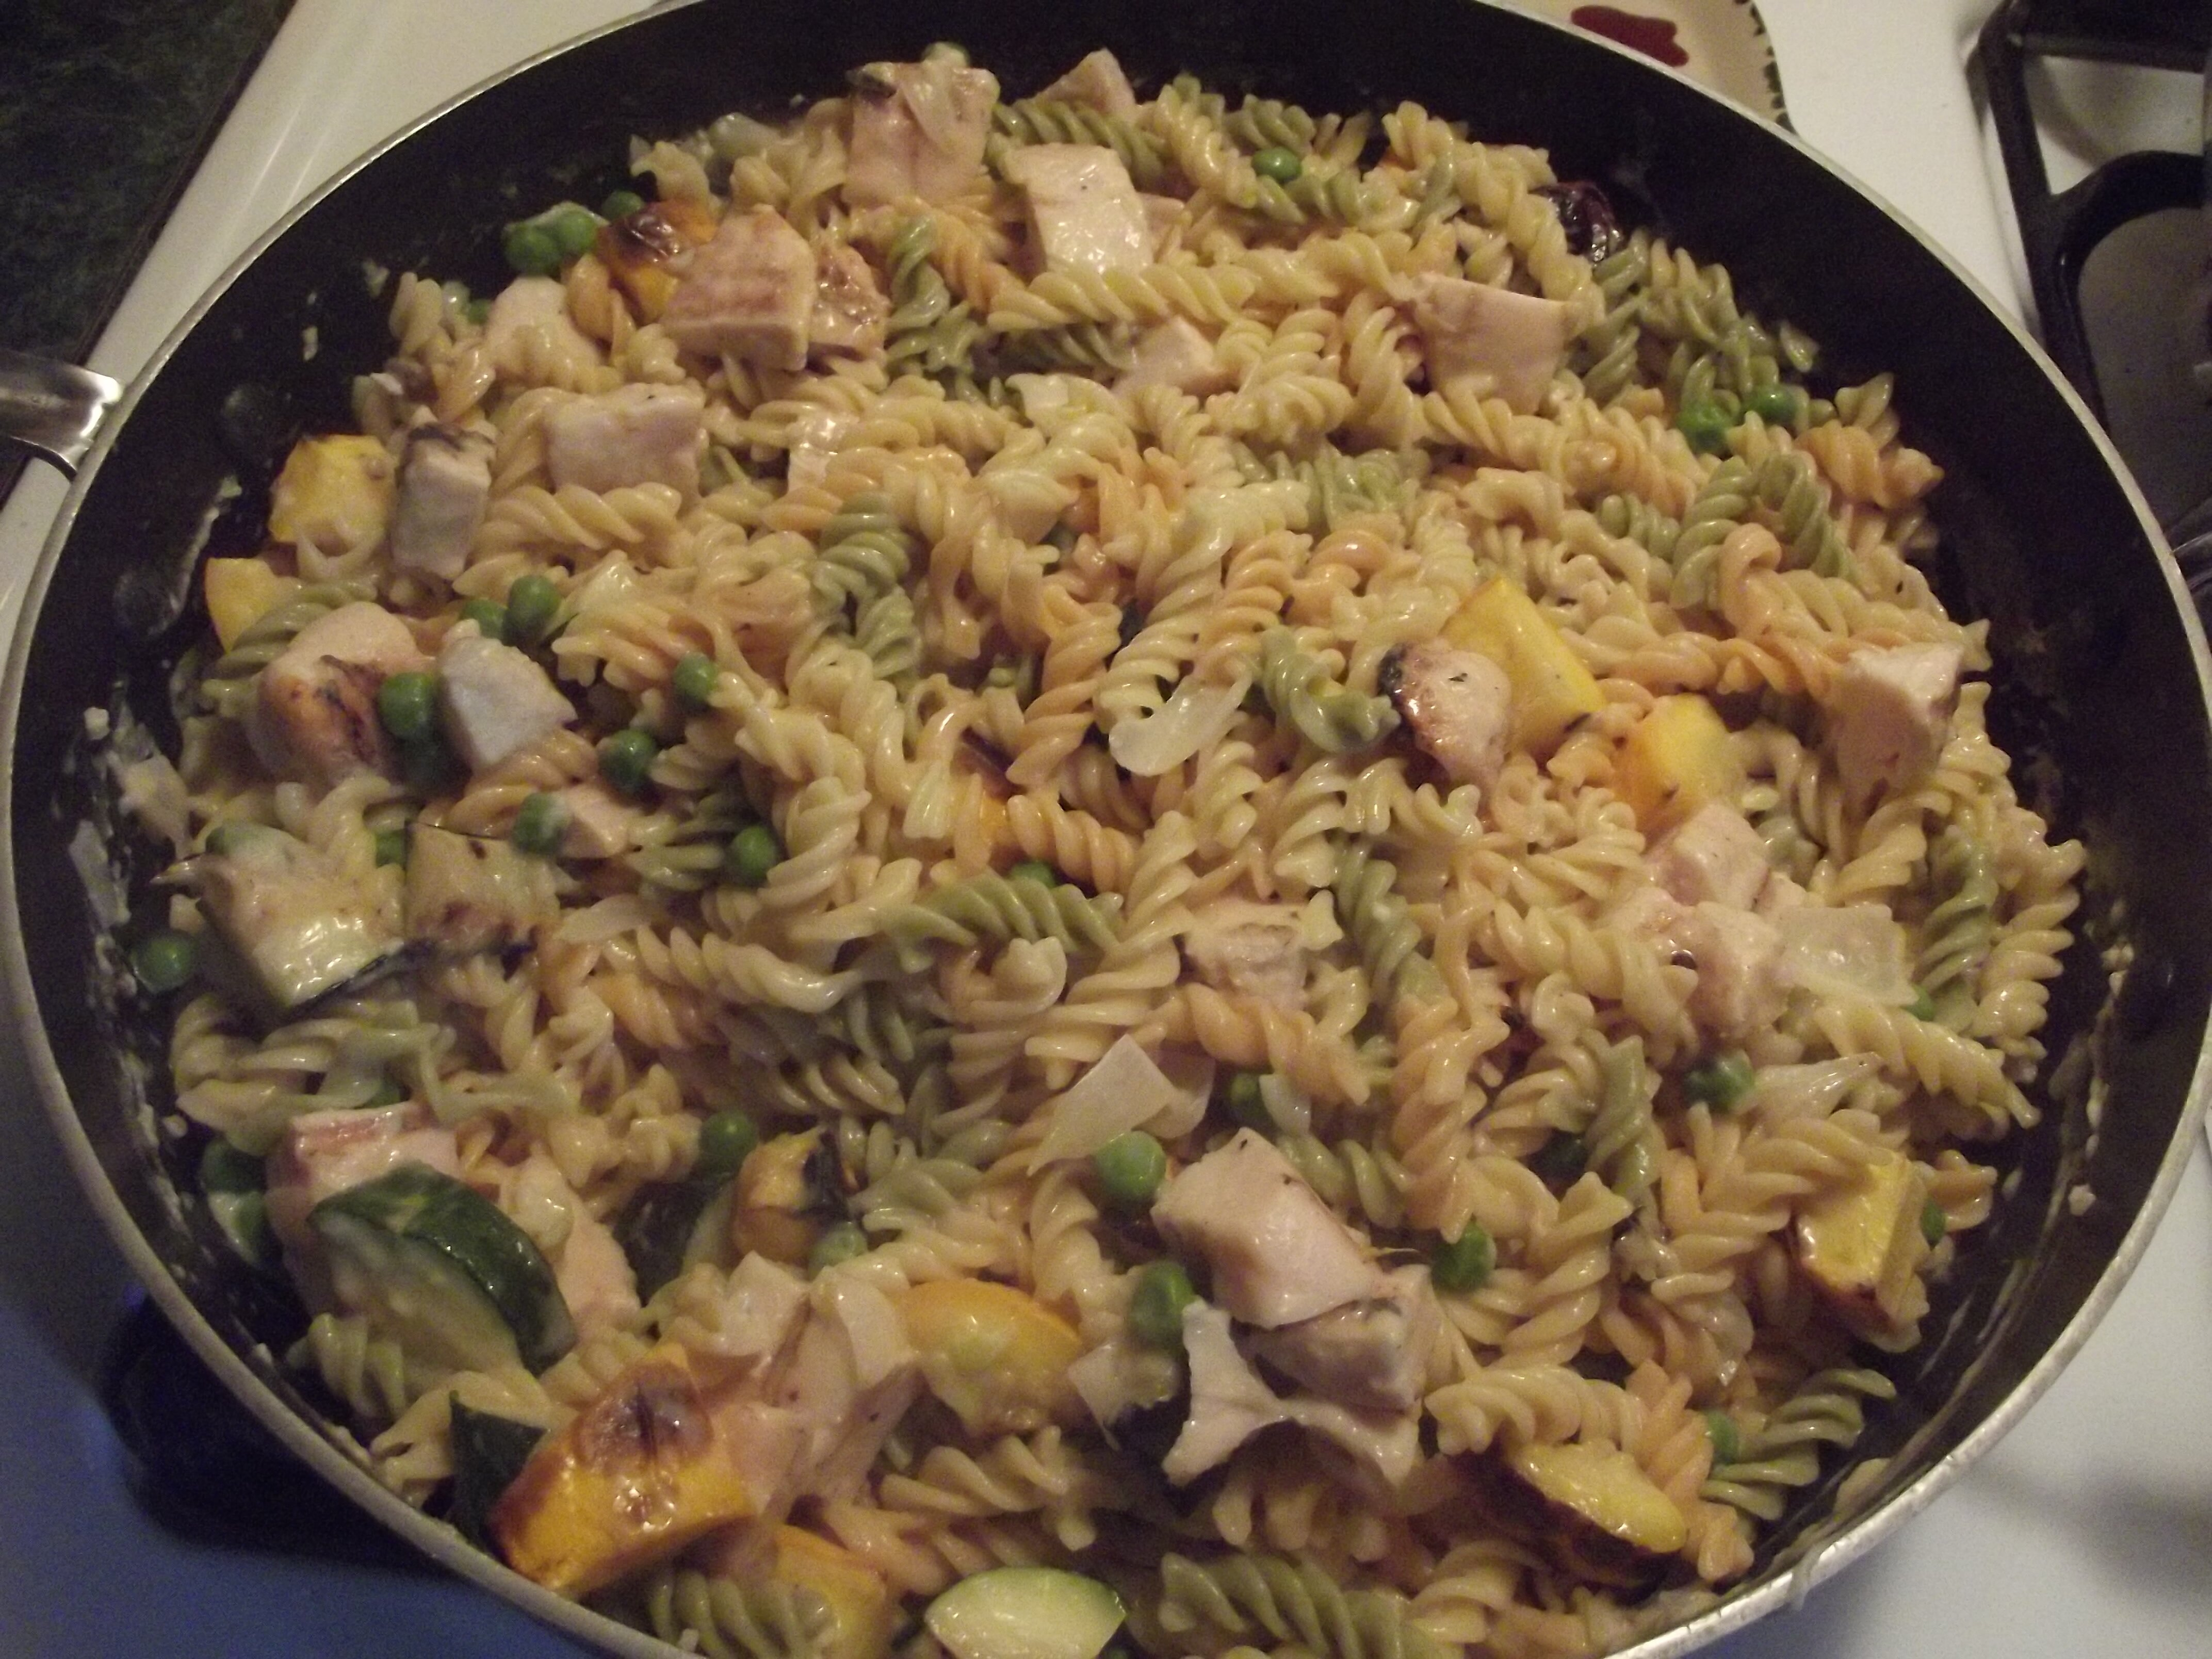 Budget Cooking with Sheila: Zucchini and Chicken Pasta for under $2.40 per person!